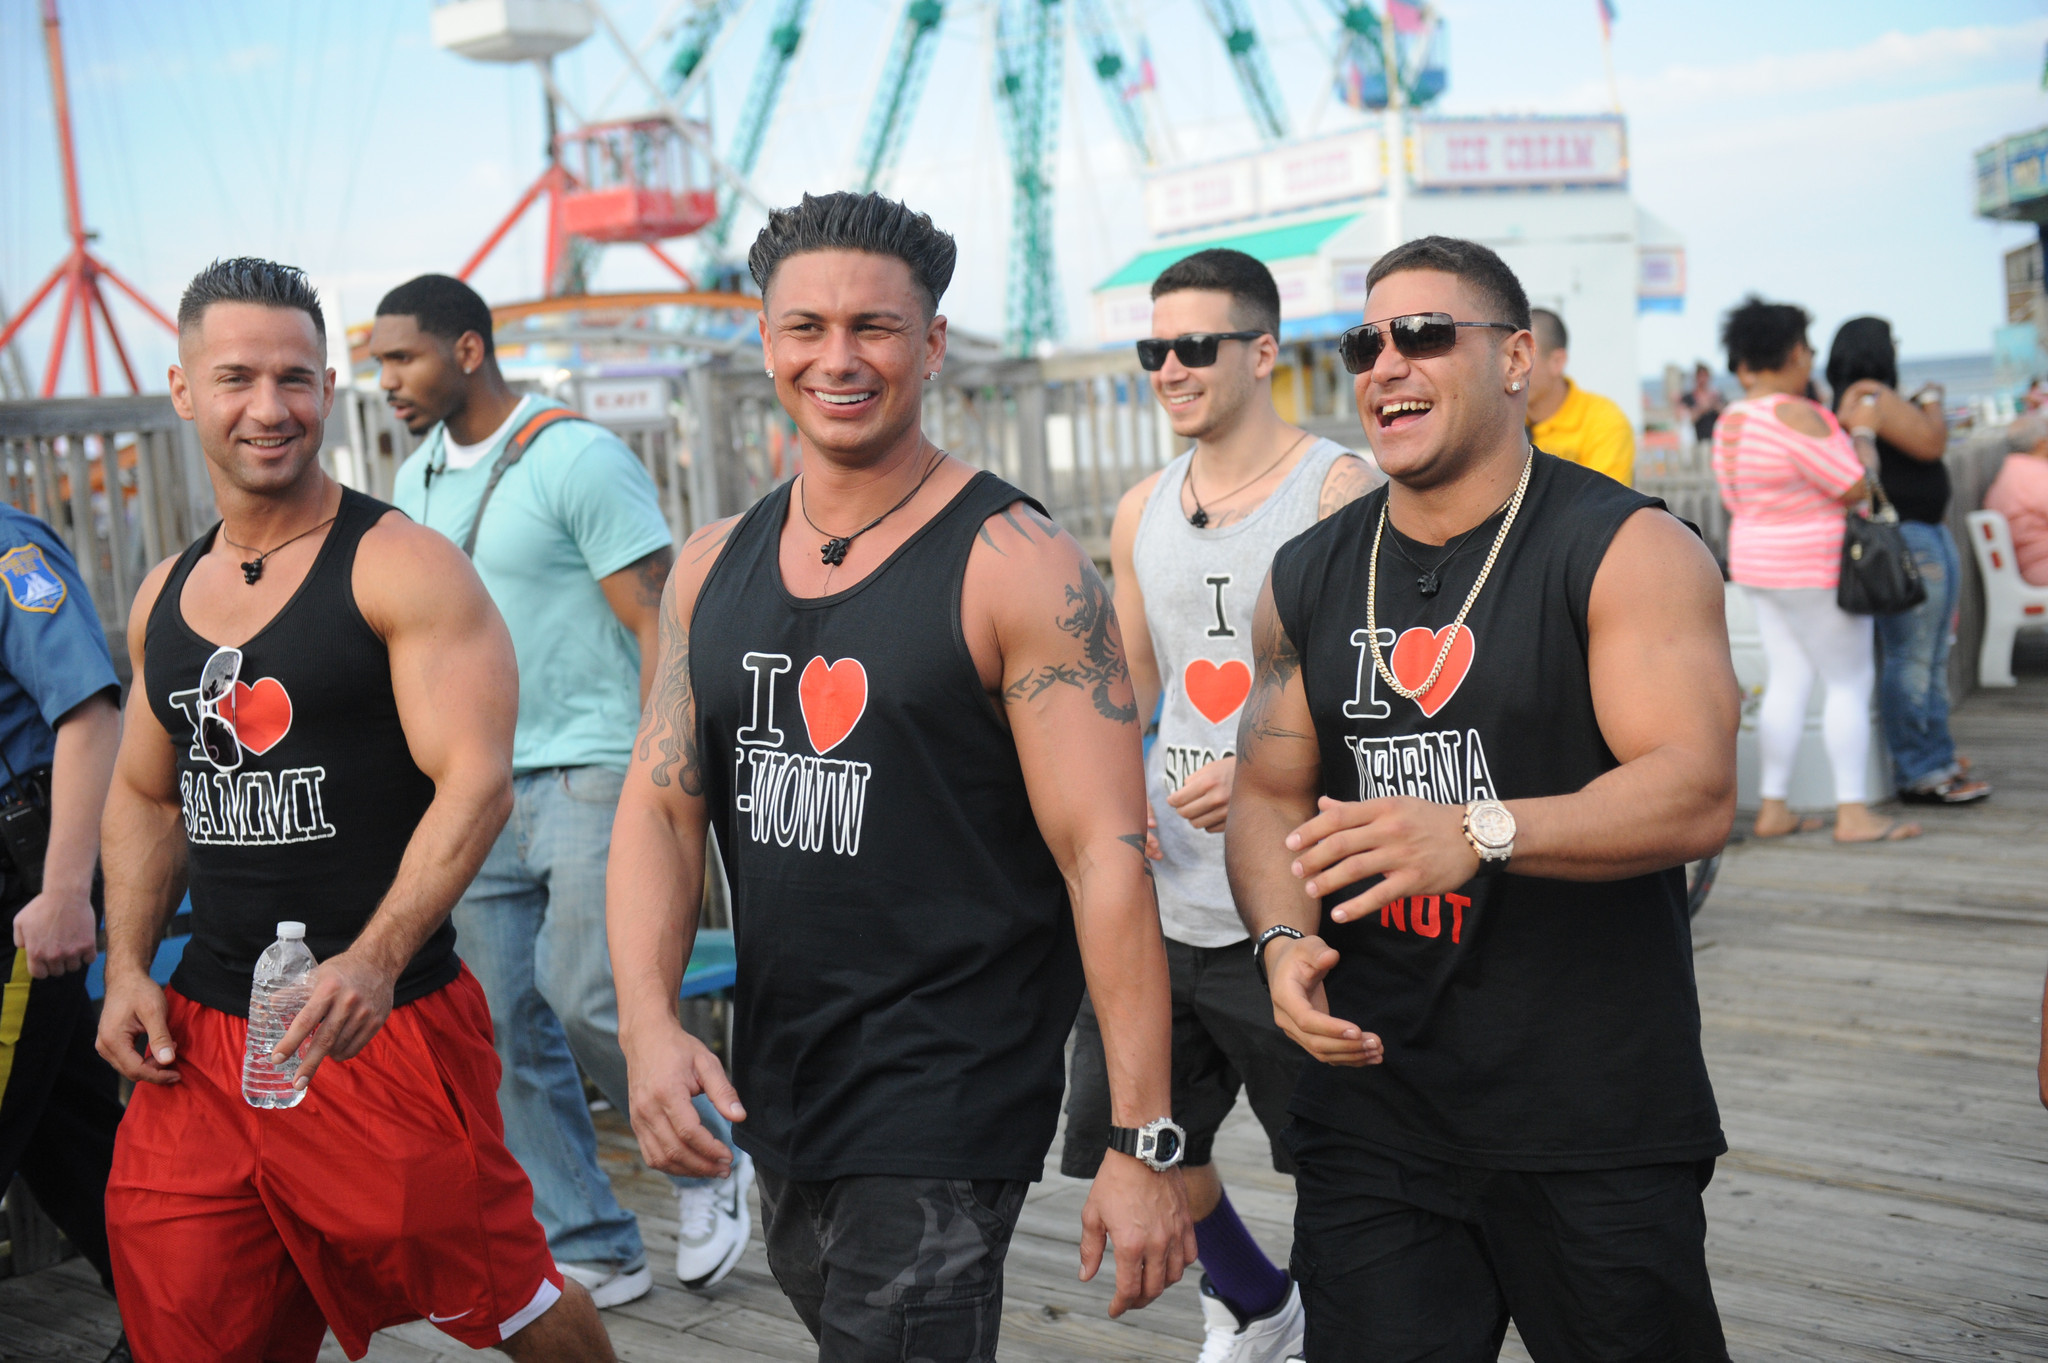 Is mike from jersey shore dating paula